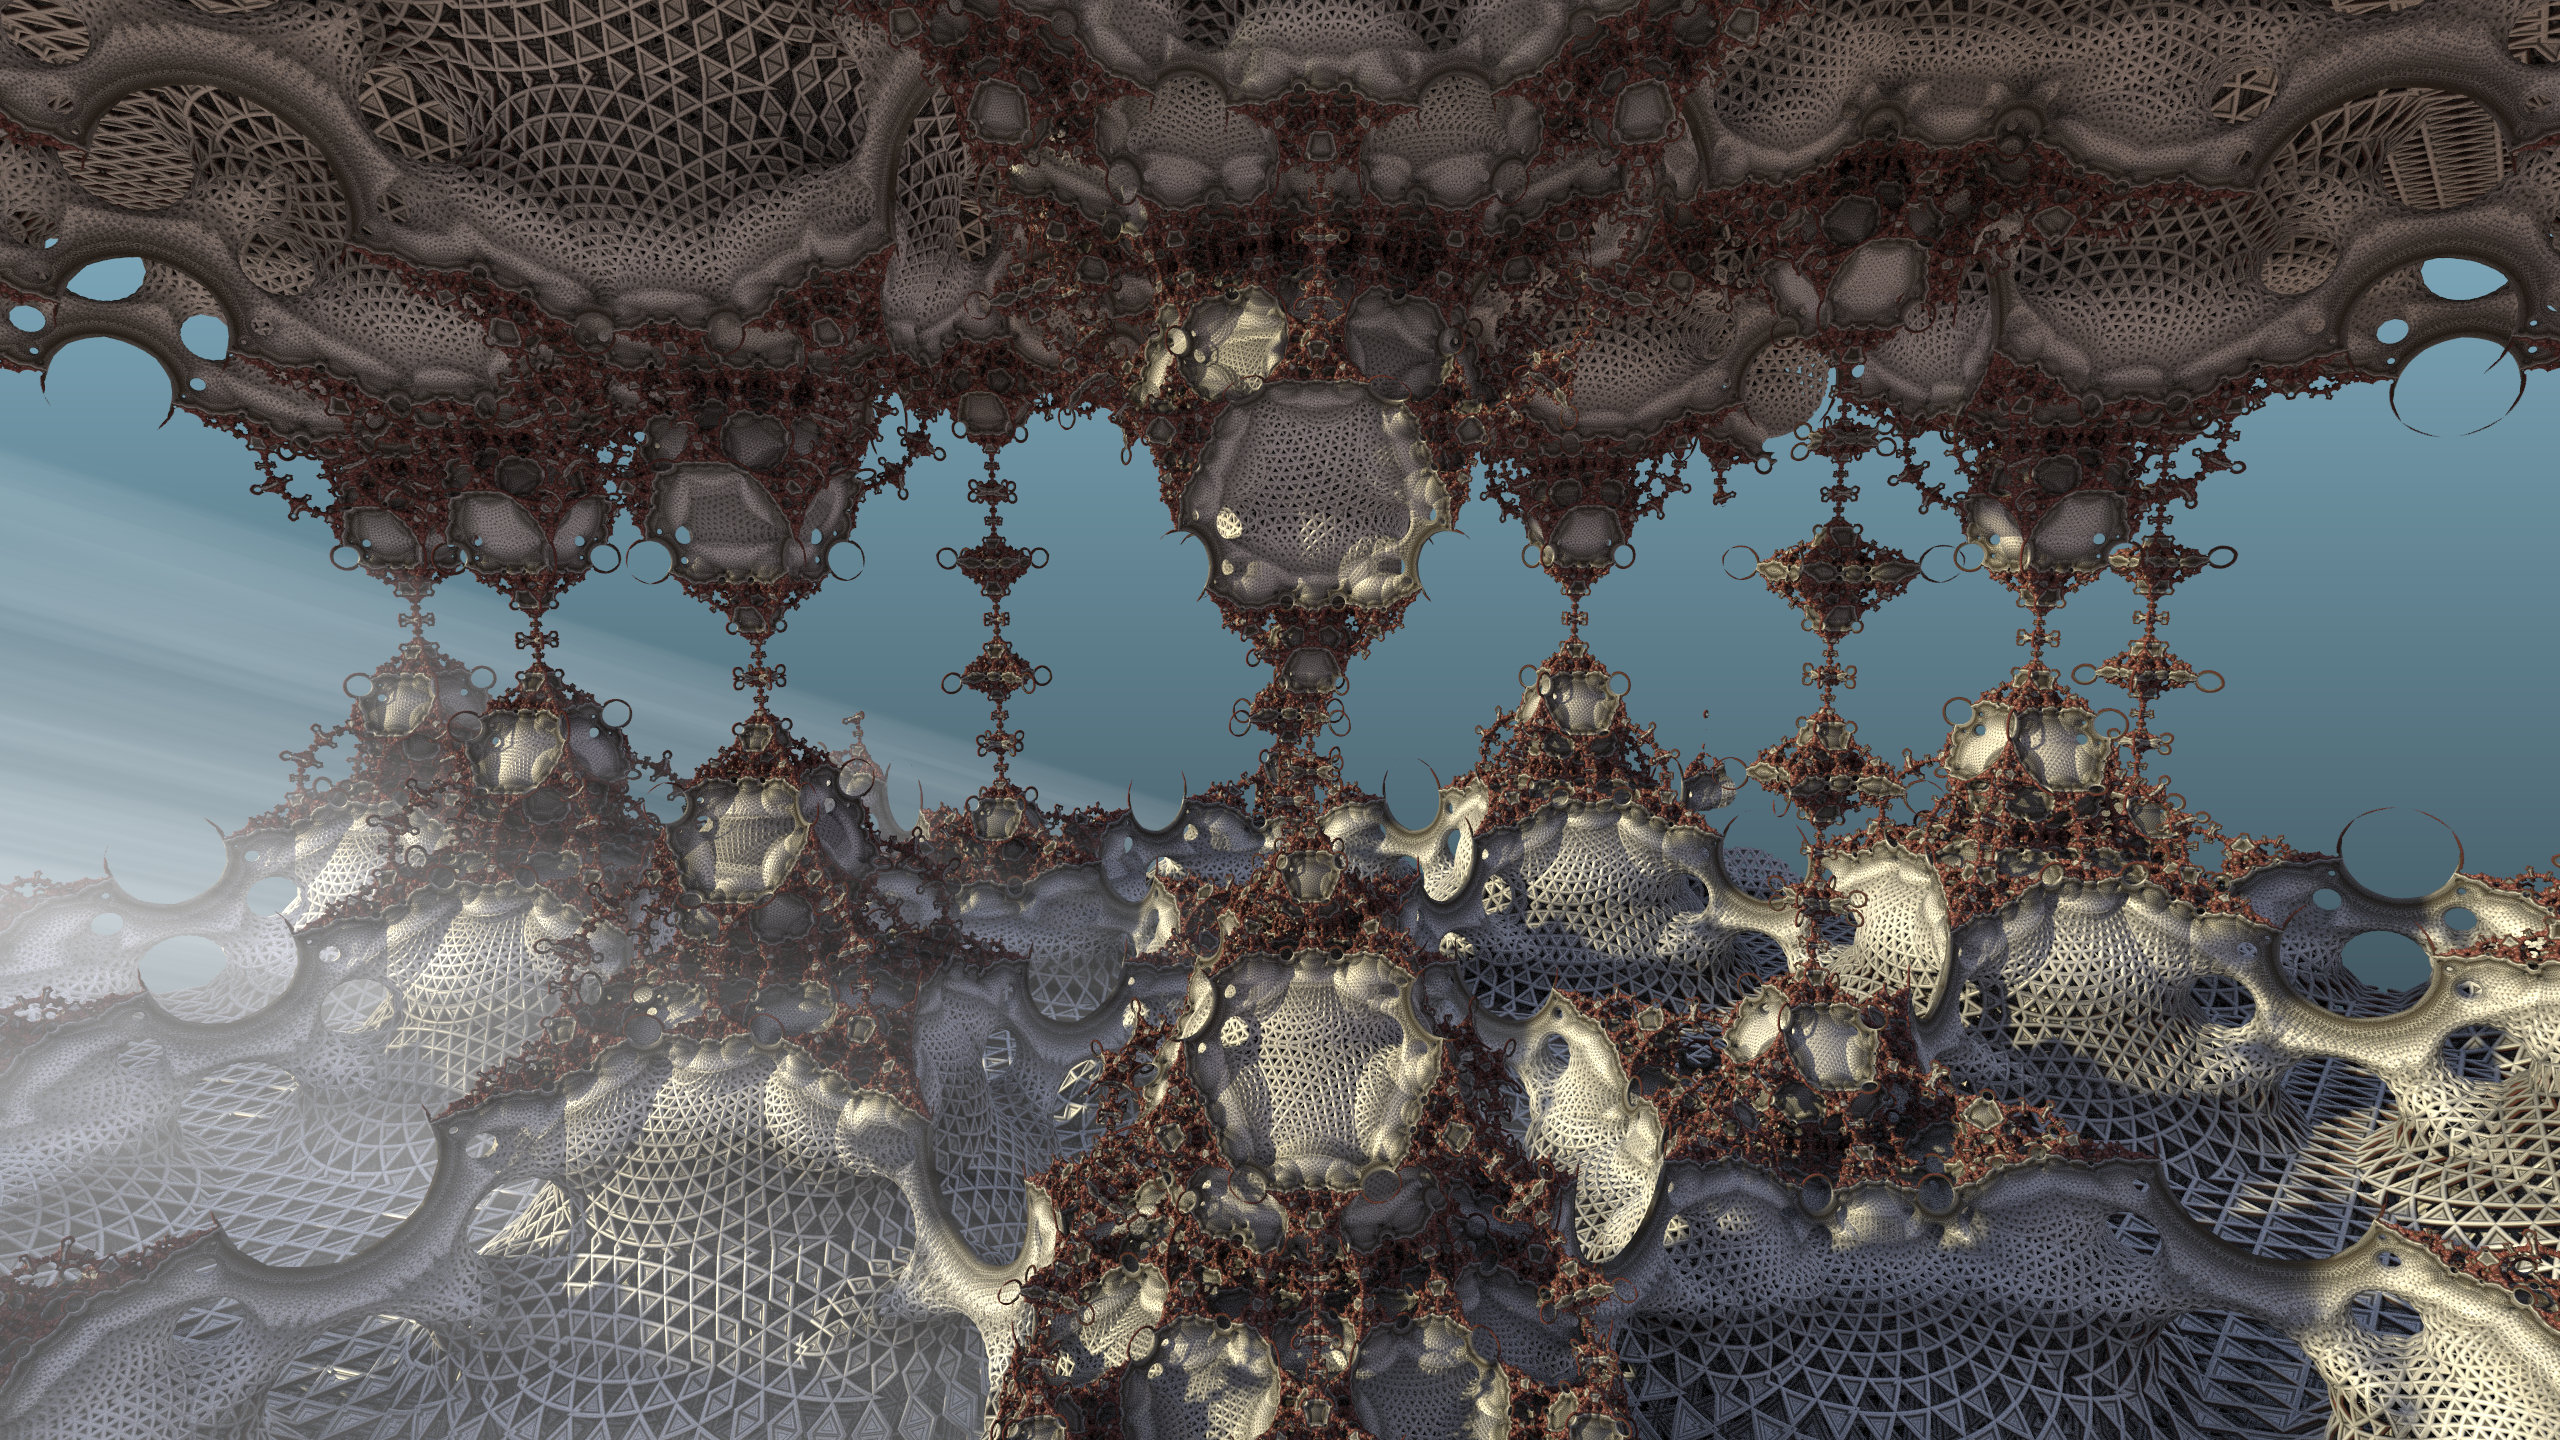 Fractalscapes №0289 MC